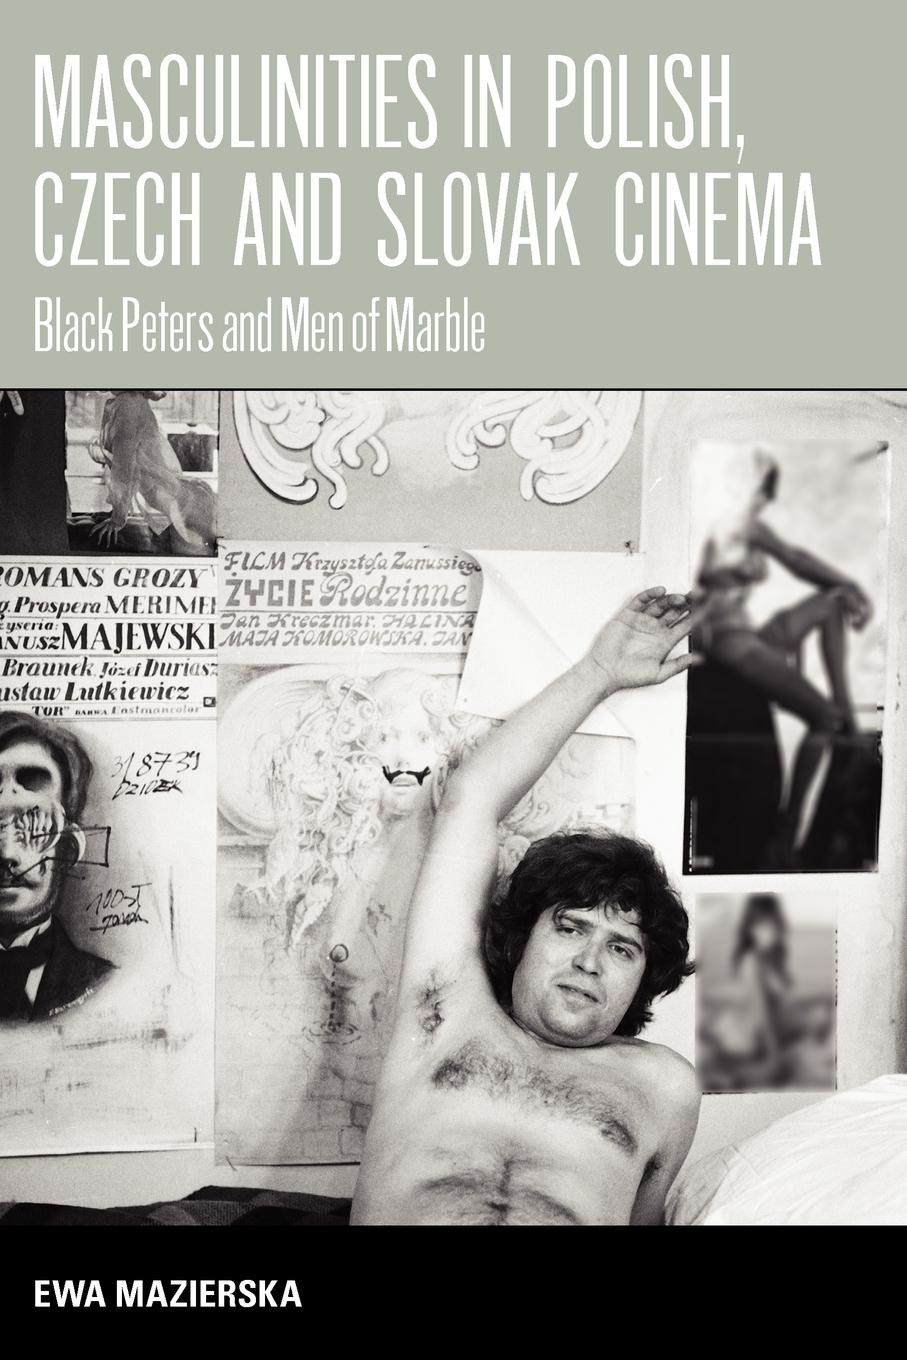 Ewa Mazierska, Ews Mazierska. Masculinities in Polish, Czech and Slovak Cinema. Black Peters and Men of Marble